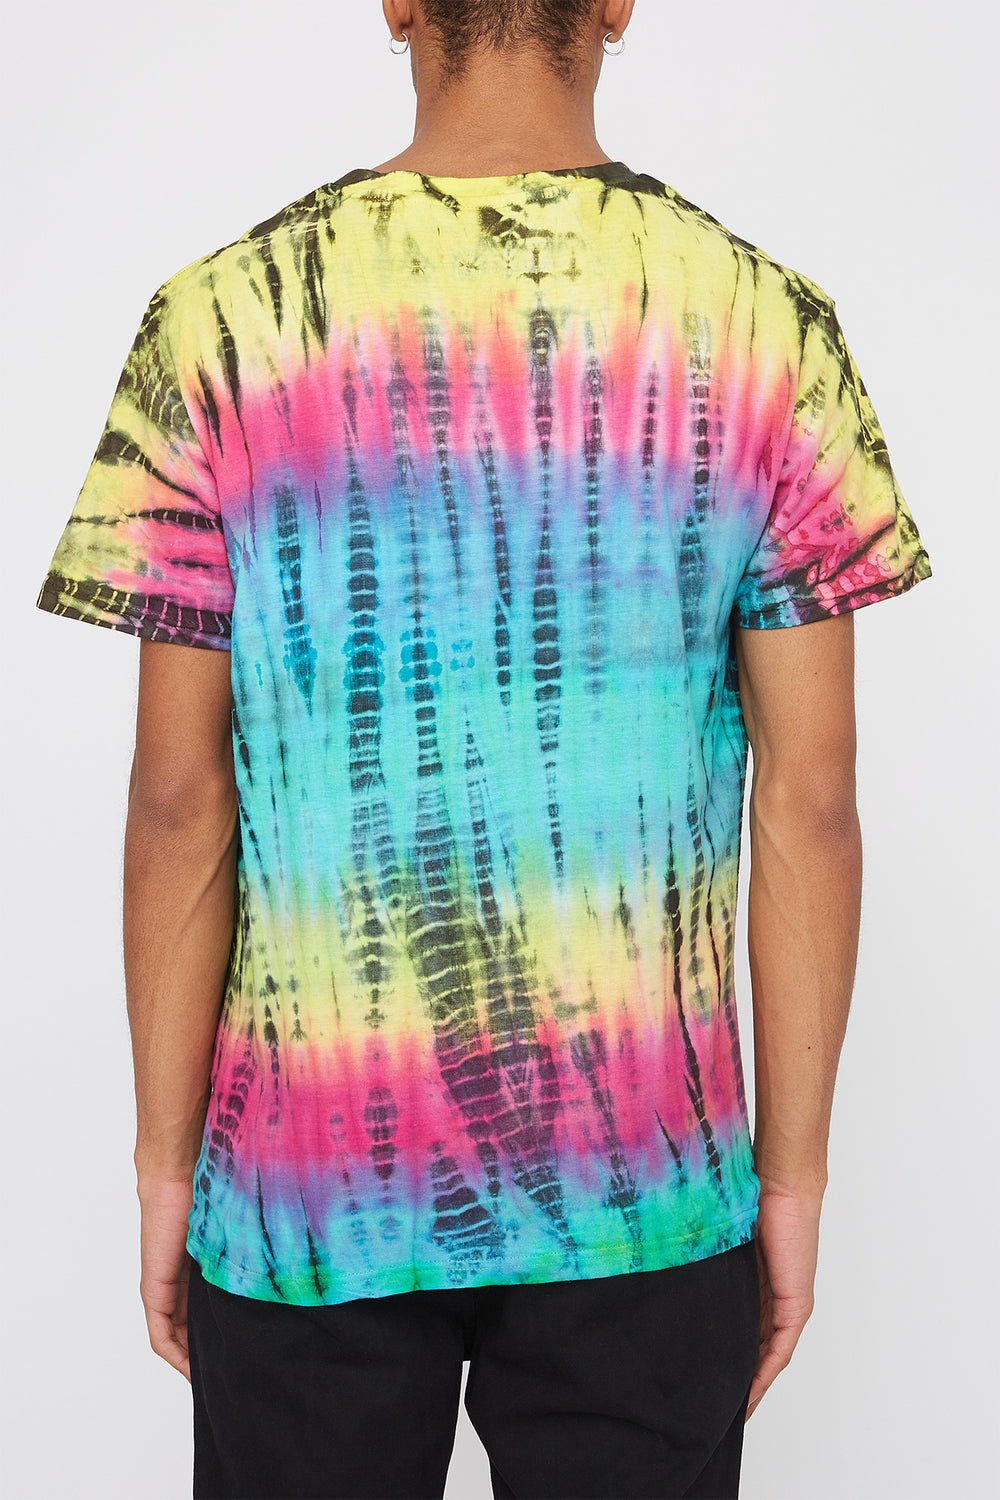 T-Shirt Tie-Dye Young & Reckless Homme Multi